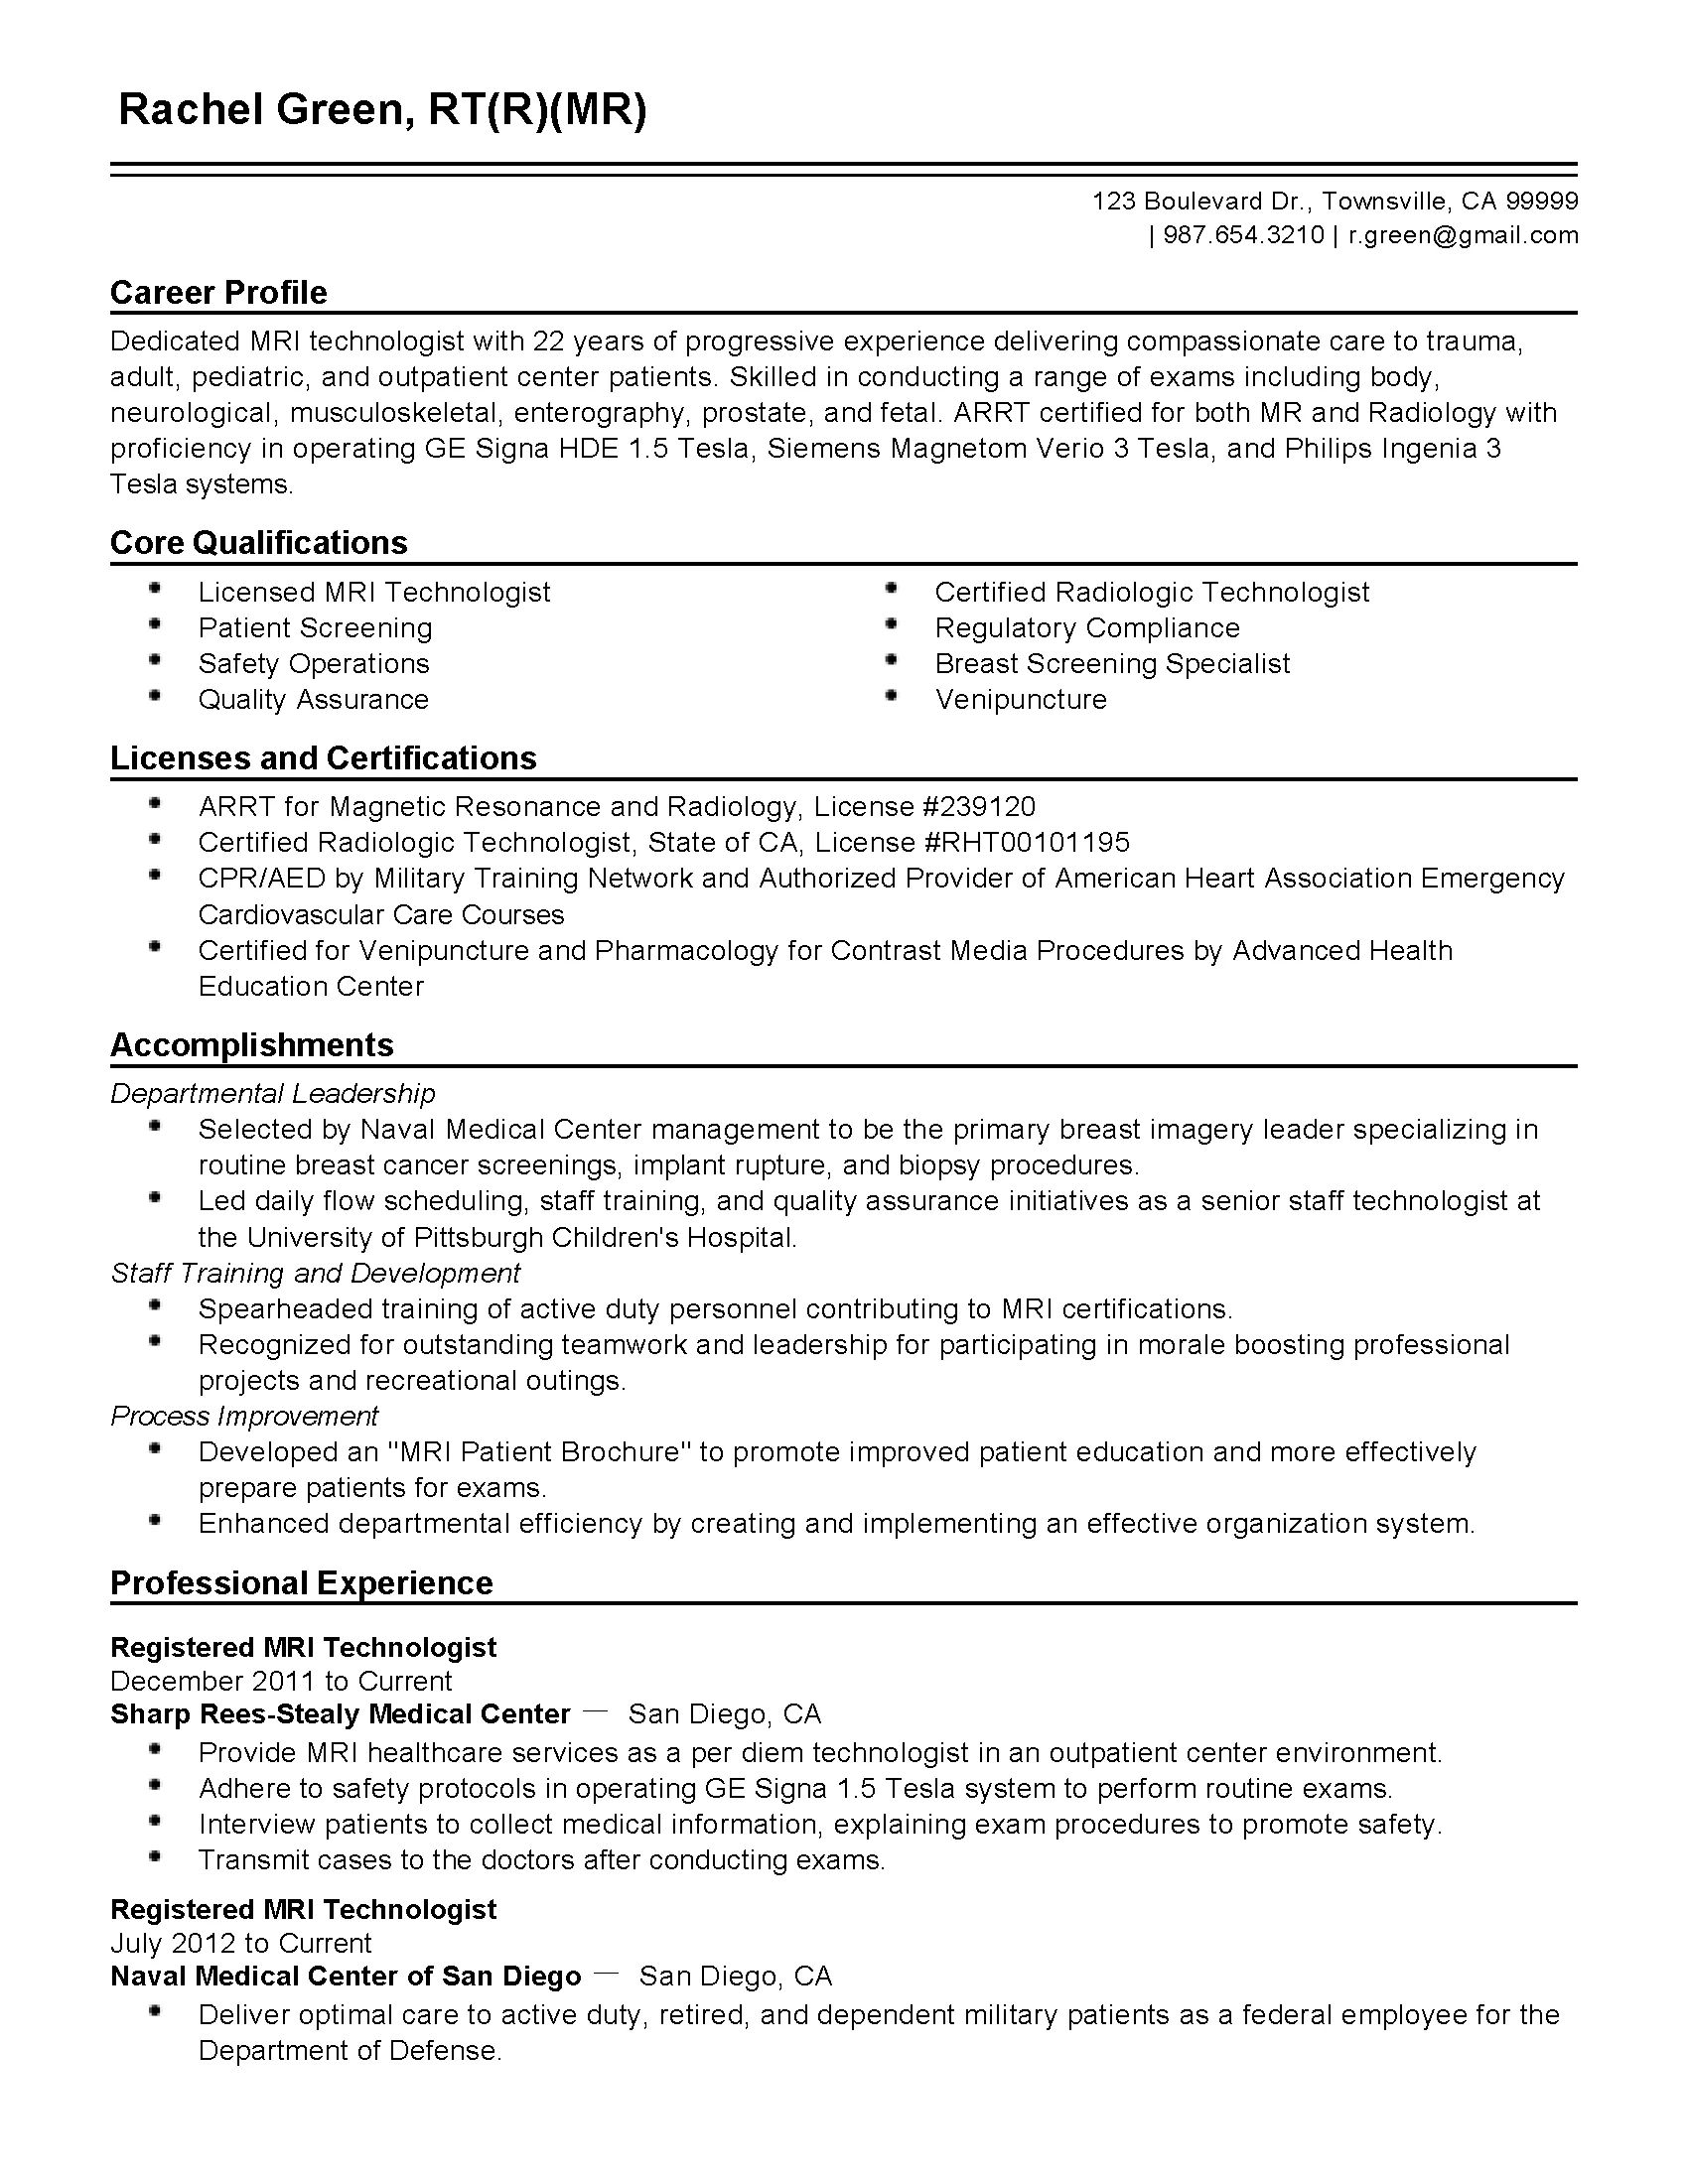 mri technologist resume sample